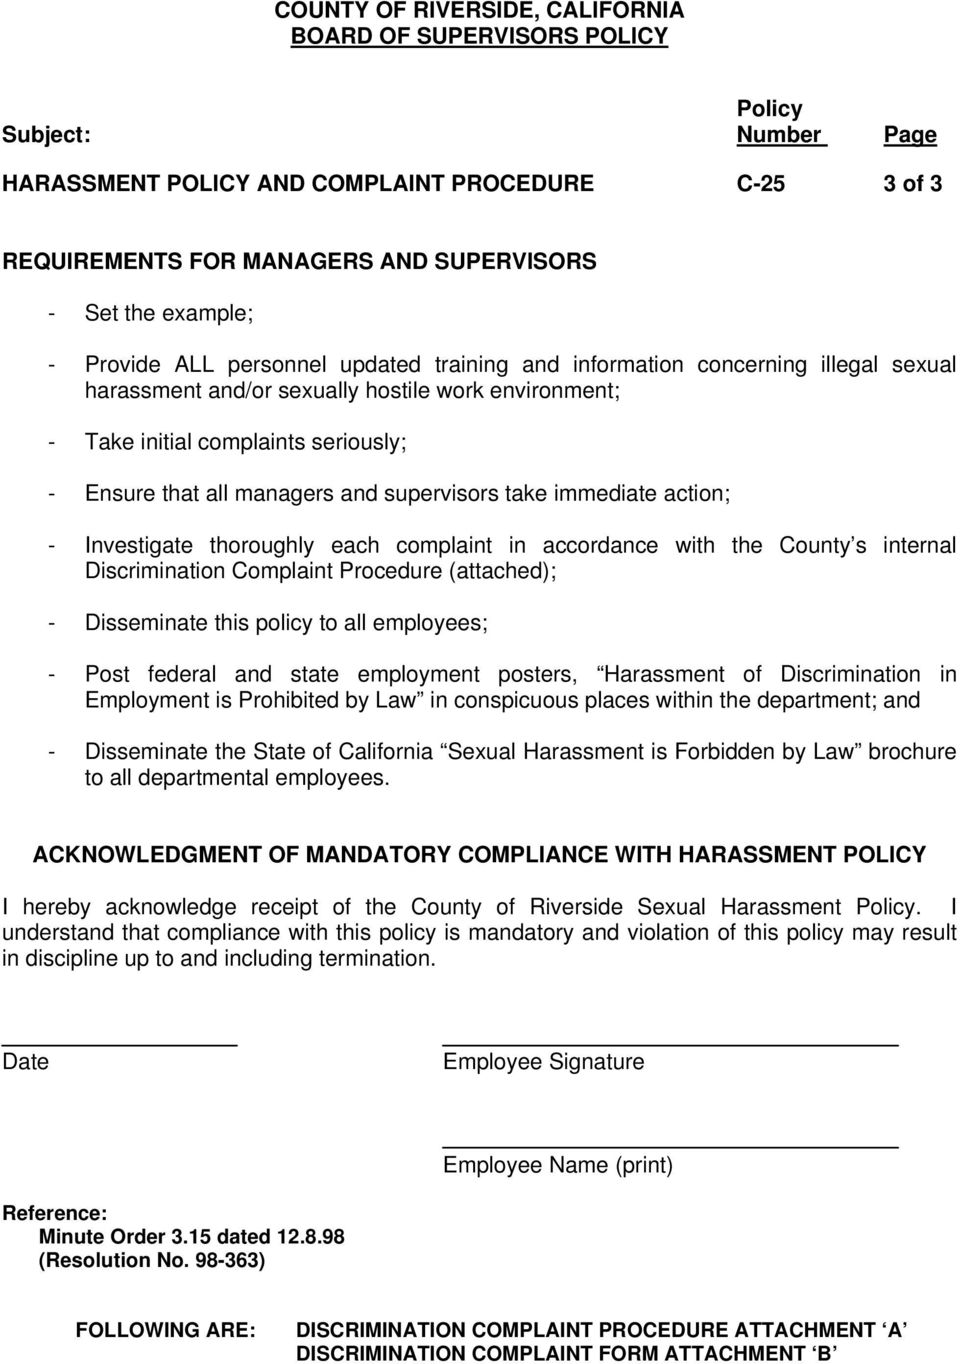 accordance with the County s internal Discrimination Complaint Procedure (attached); - Disseminate this policy to all employees; - Post federal and state employment posters, Harassment of